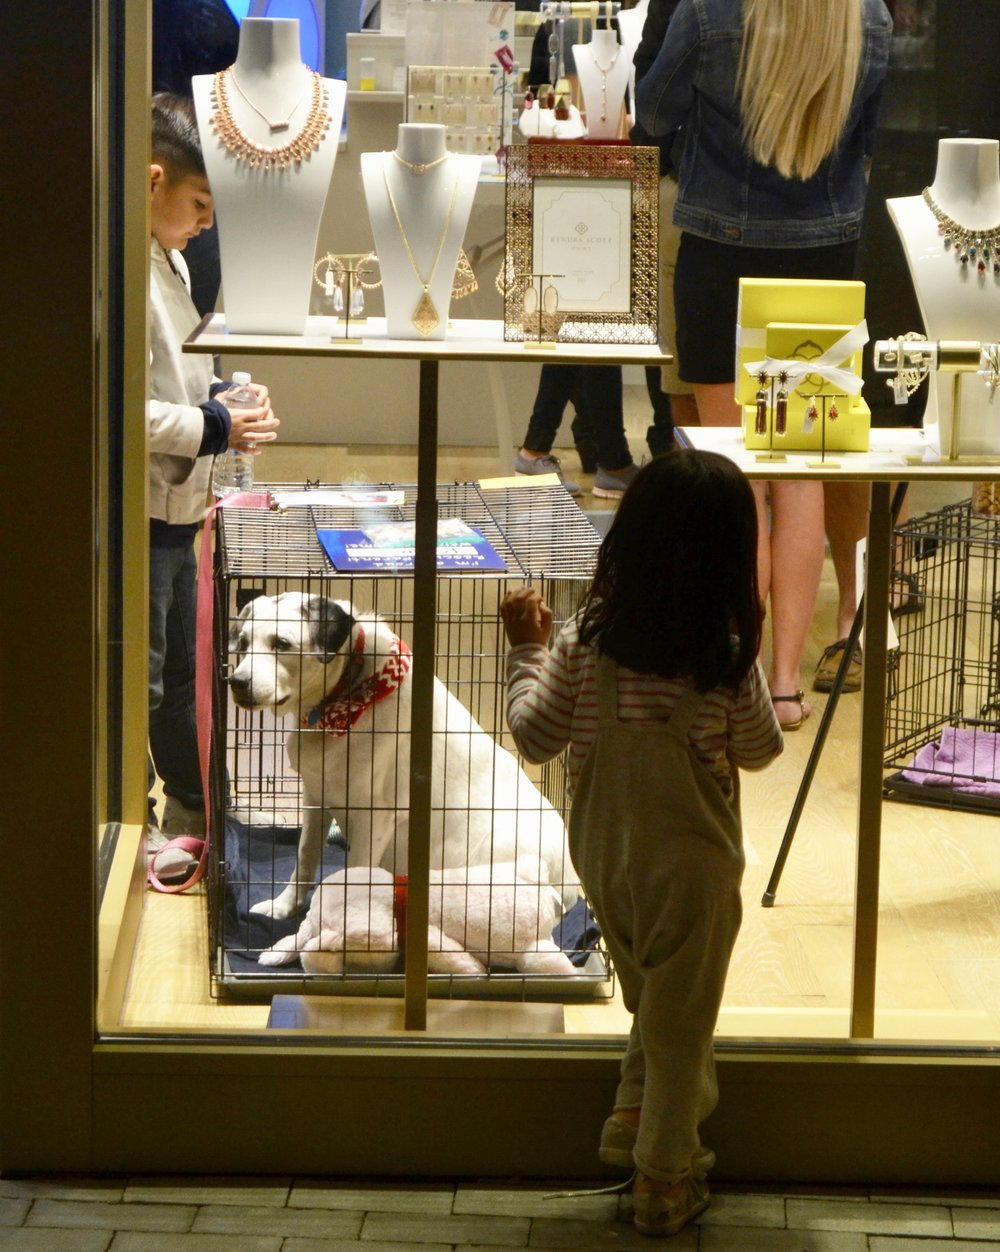 A young passerby stares into the storefront window at Bella, one of our rescue dogs that was recently adopted into a loving family.